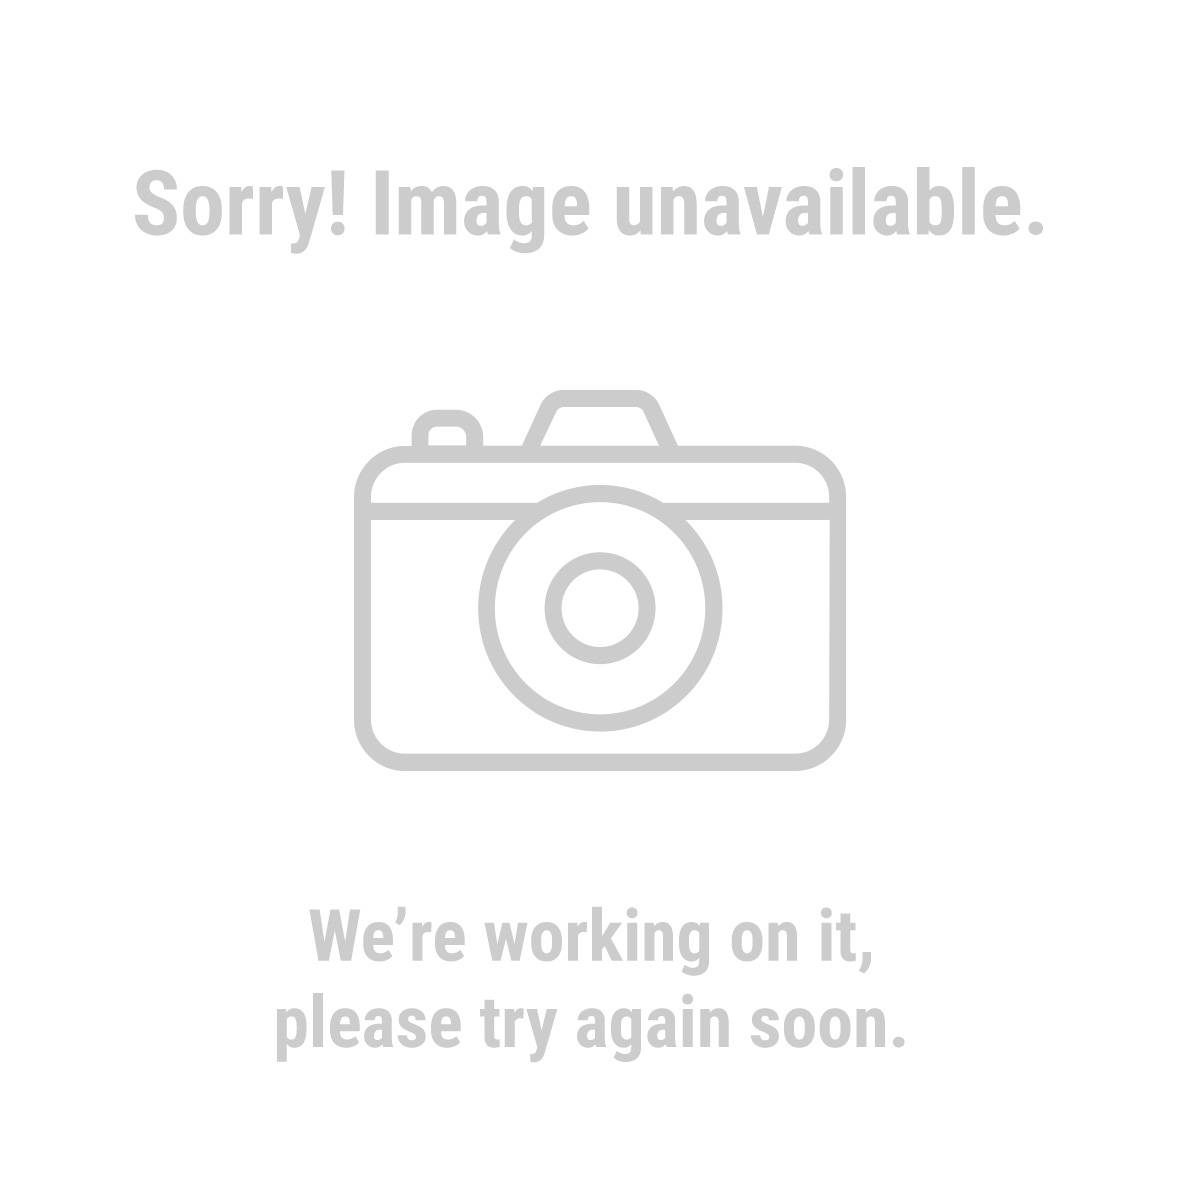 10 Piece Bearing Race and Seal Driver Set